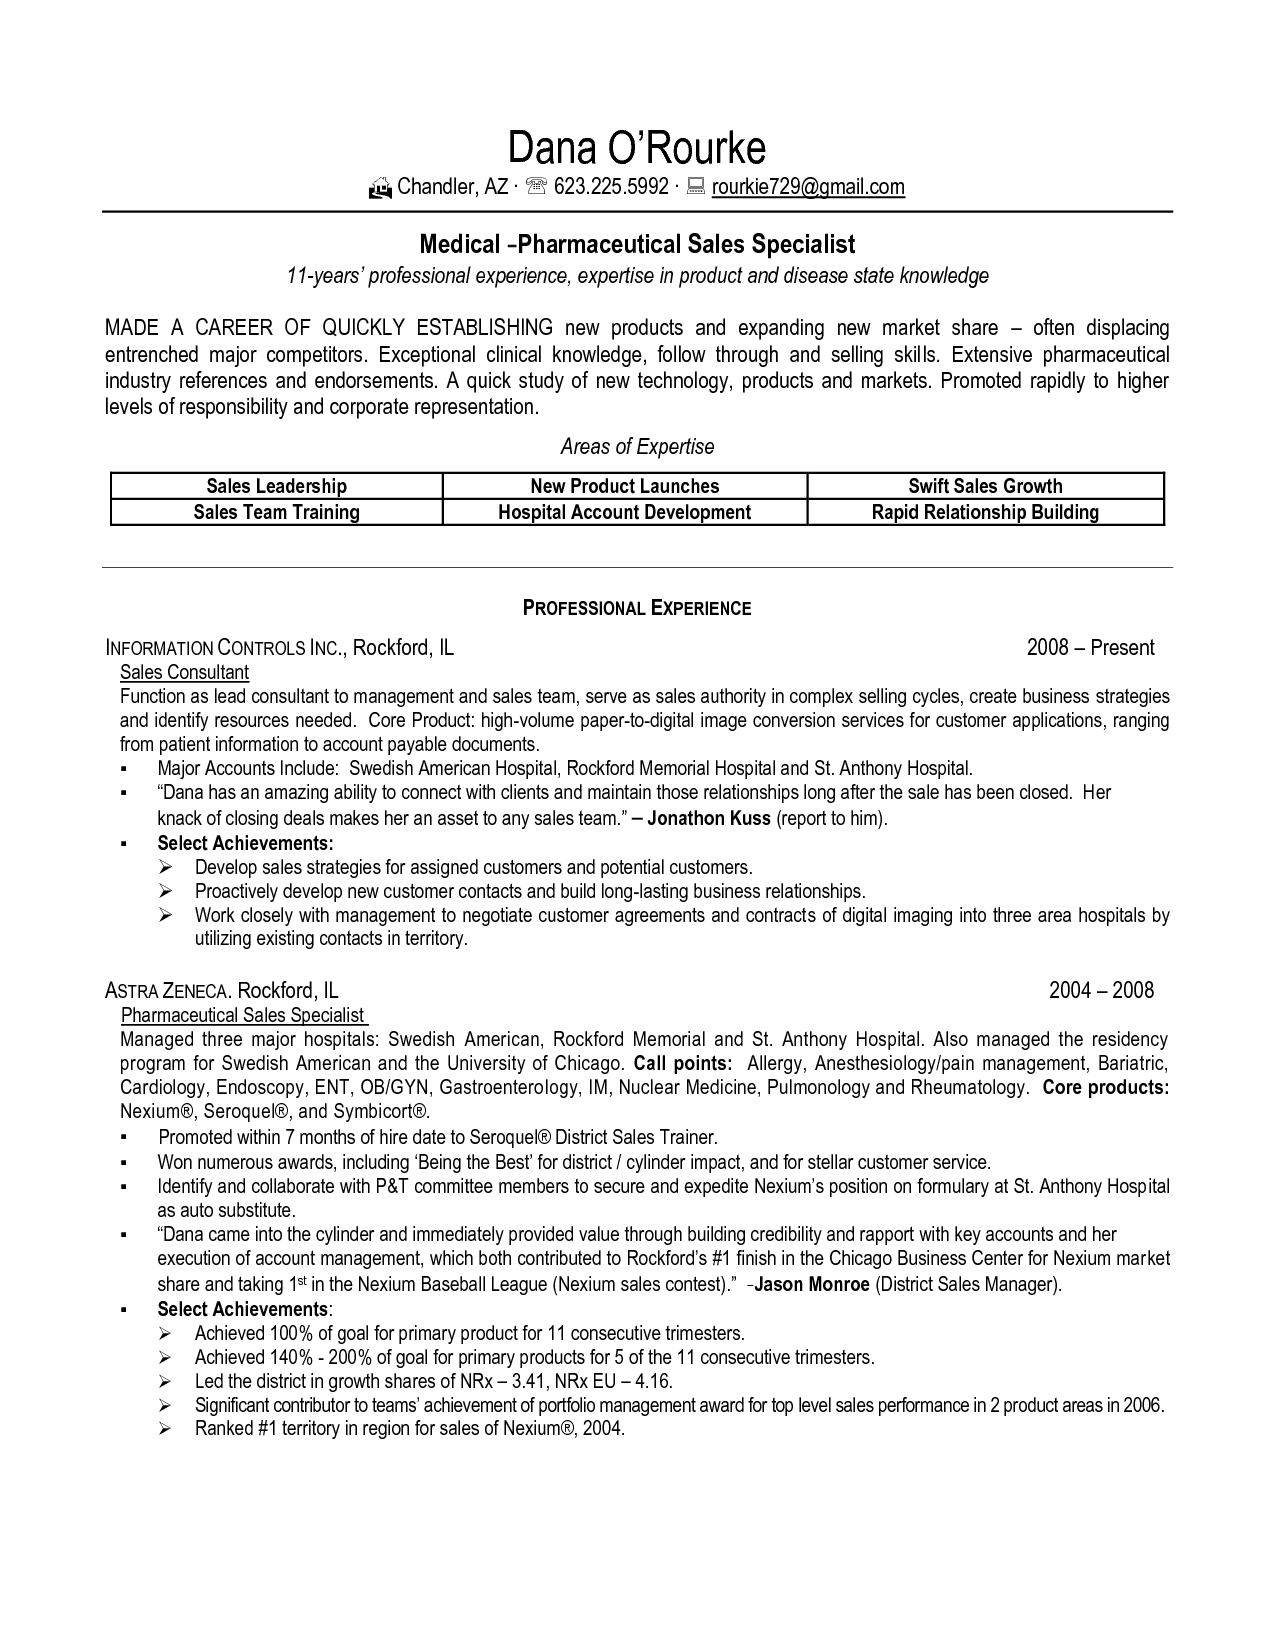 Career Objective For Biotechnology Resume Sample Resume For Pharmaceutical Industry Sample Resume